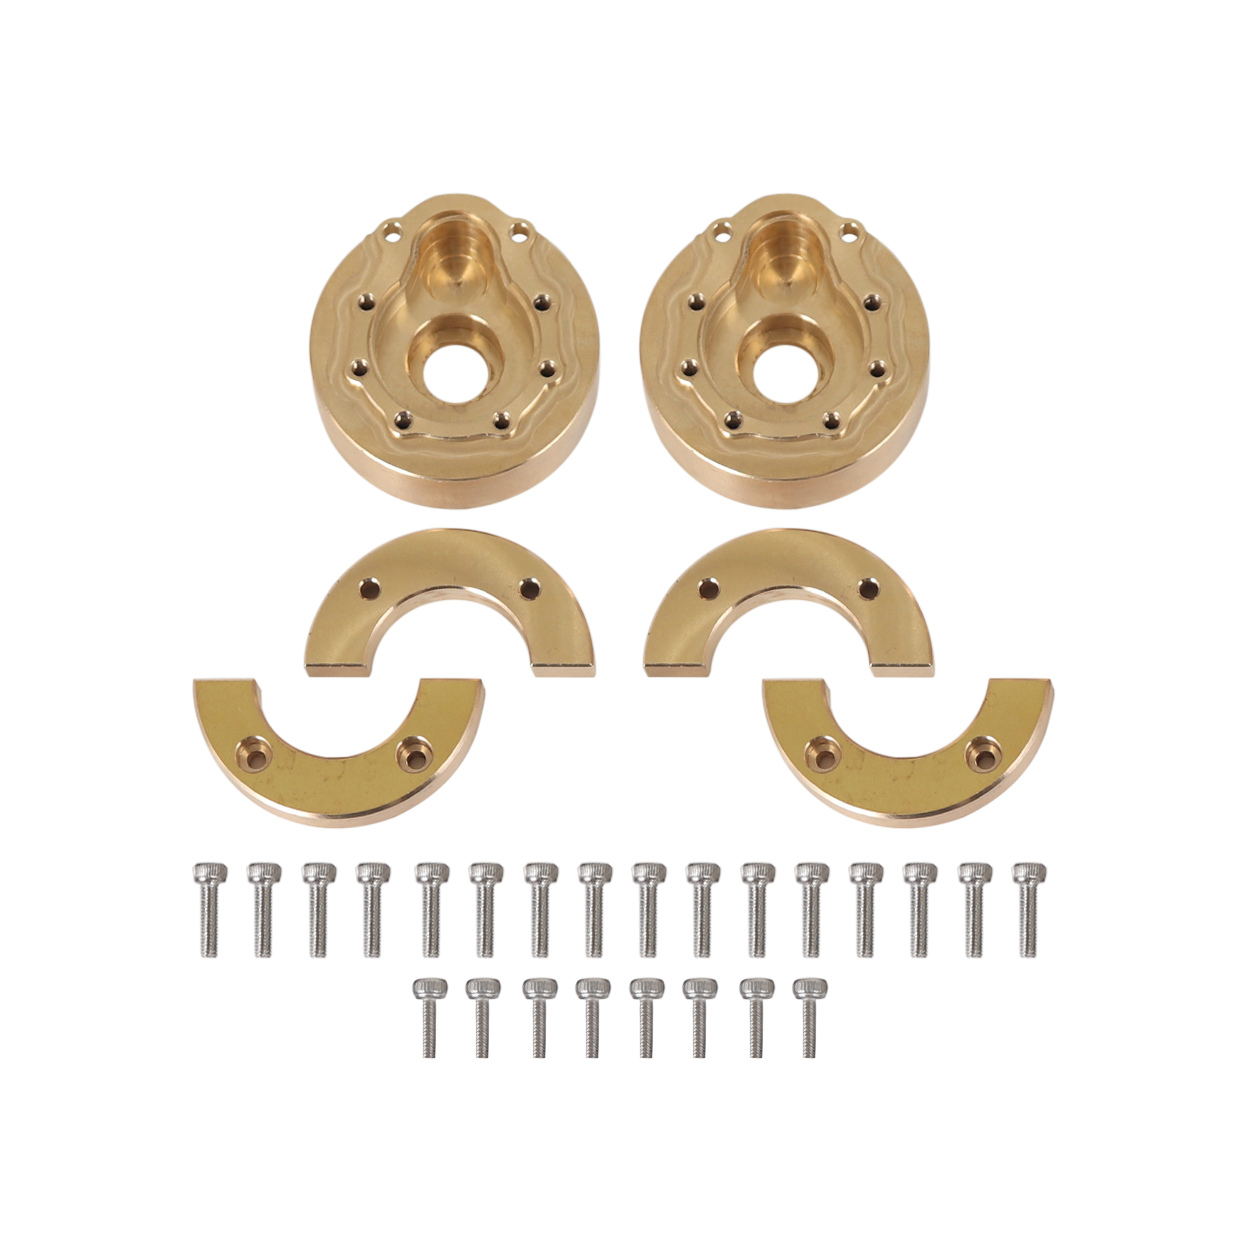 Brass Axles Heavy Weight Competitive 122g Axles Steering Gear Cover for 1/10 Rc Crawler Car Traxxas Trx4 brass